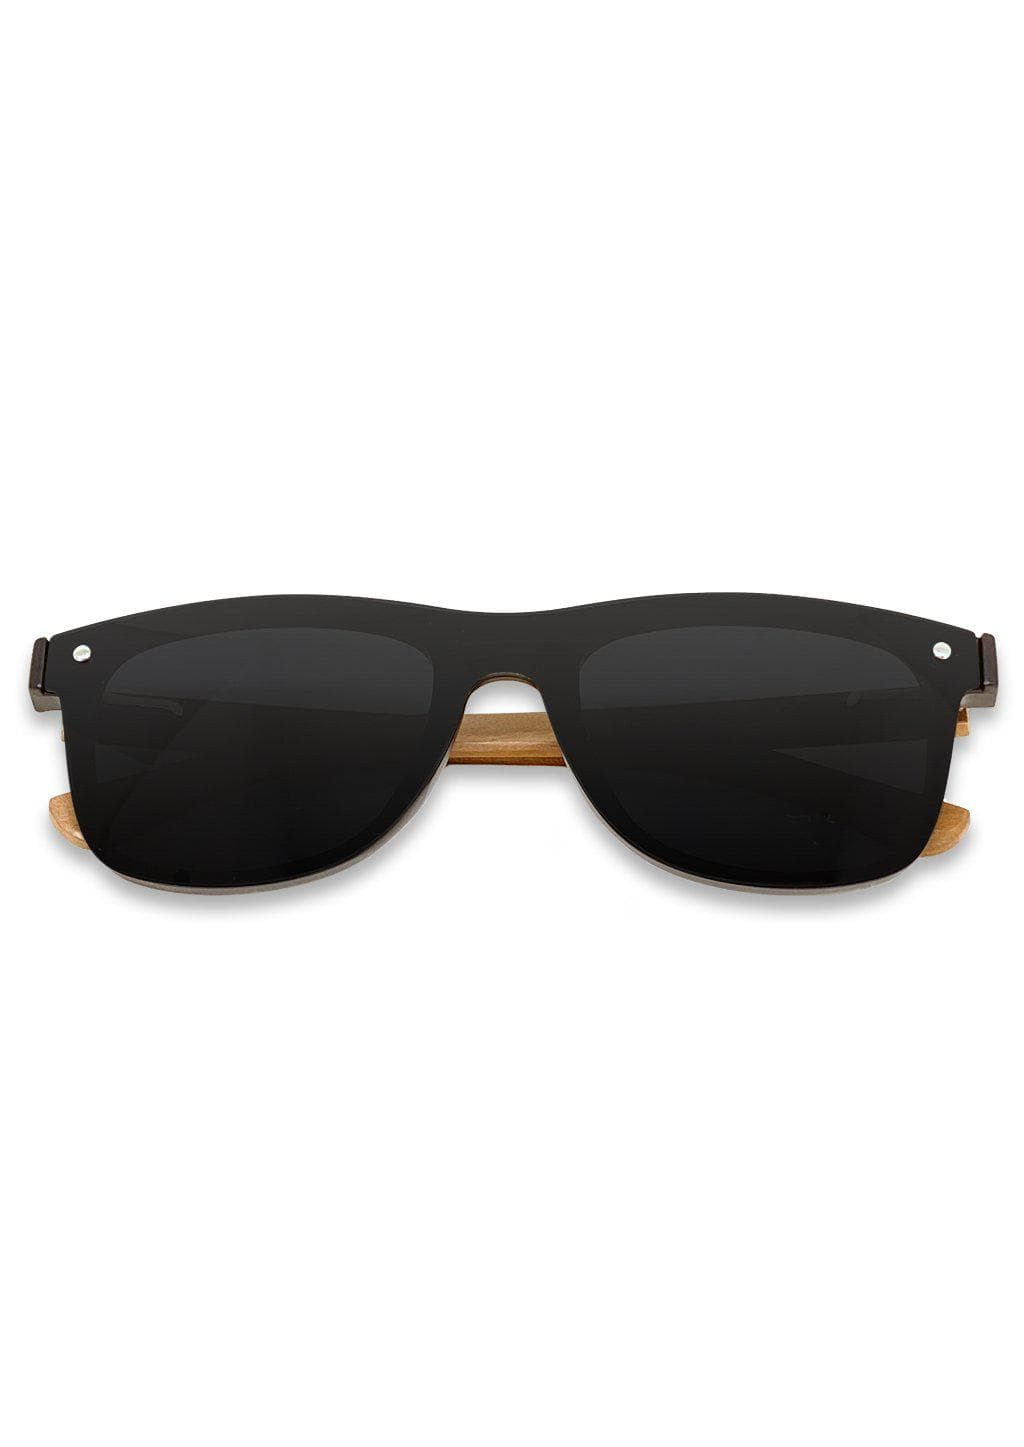 Eyewood tomorrow is our modern cool take on classic models. This is Taurus with black lenses. Nice wooden sunglasses.